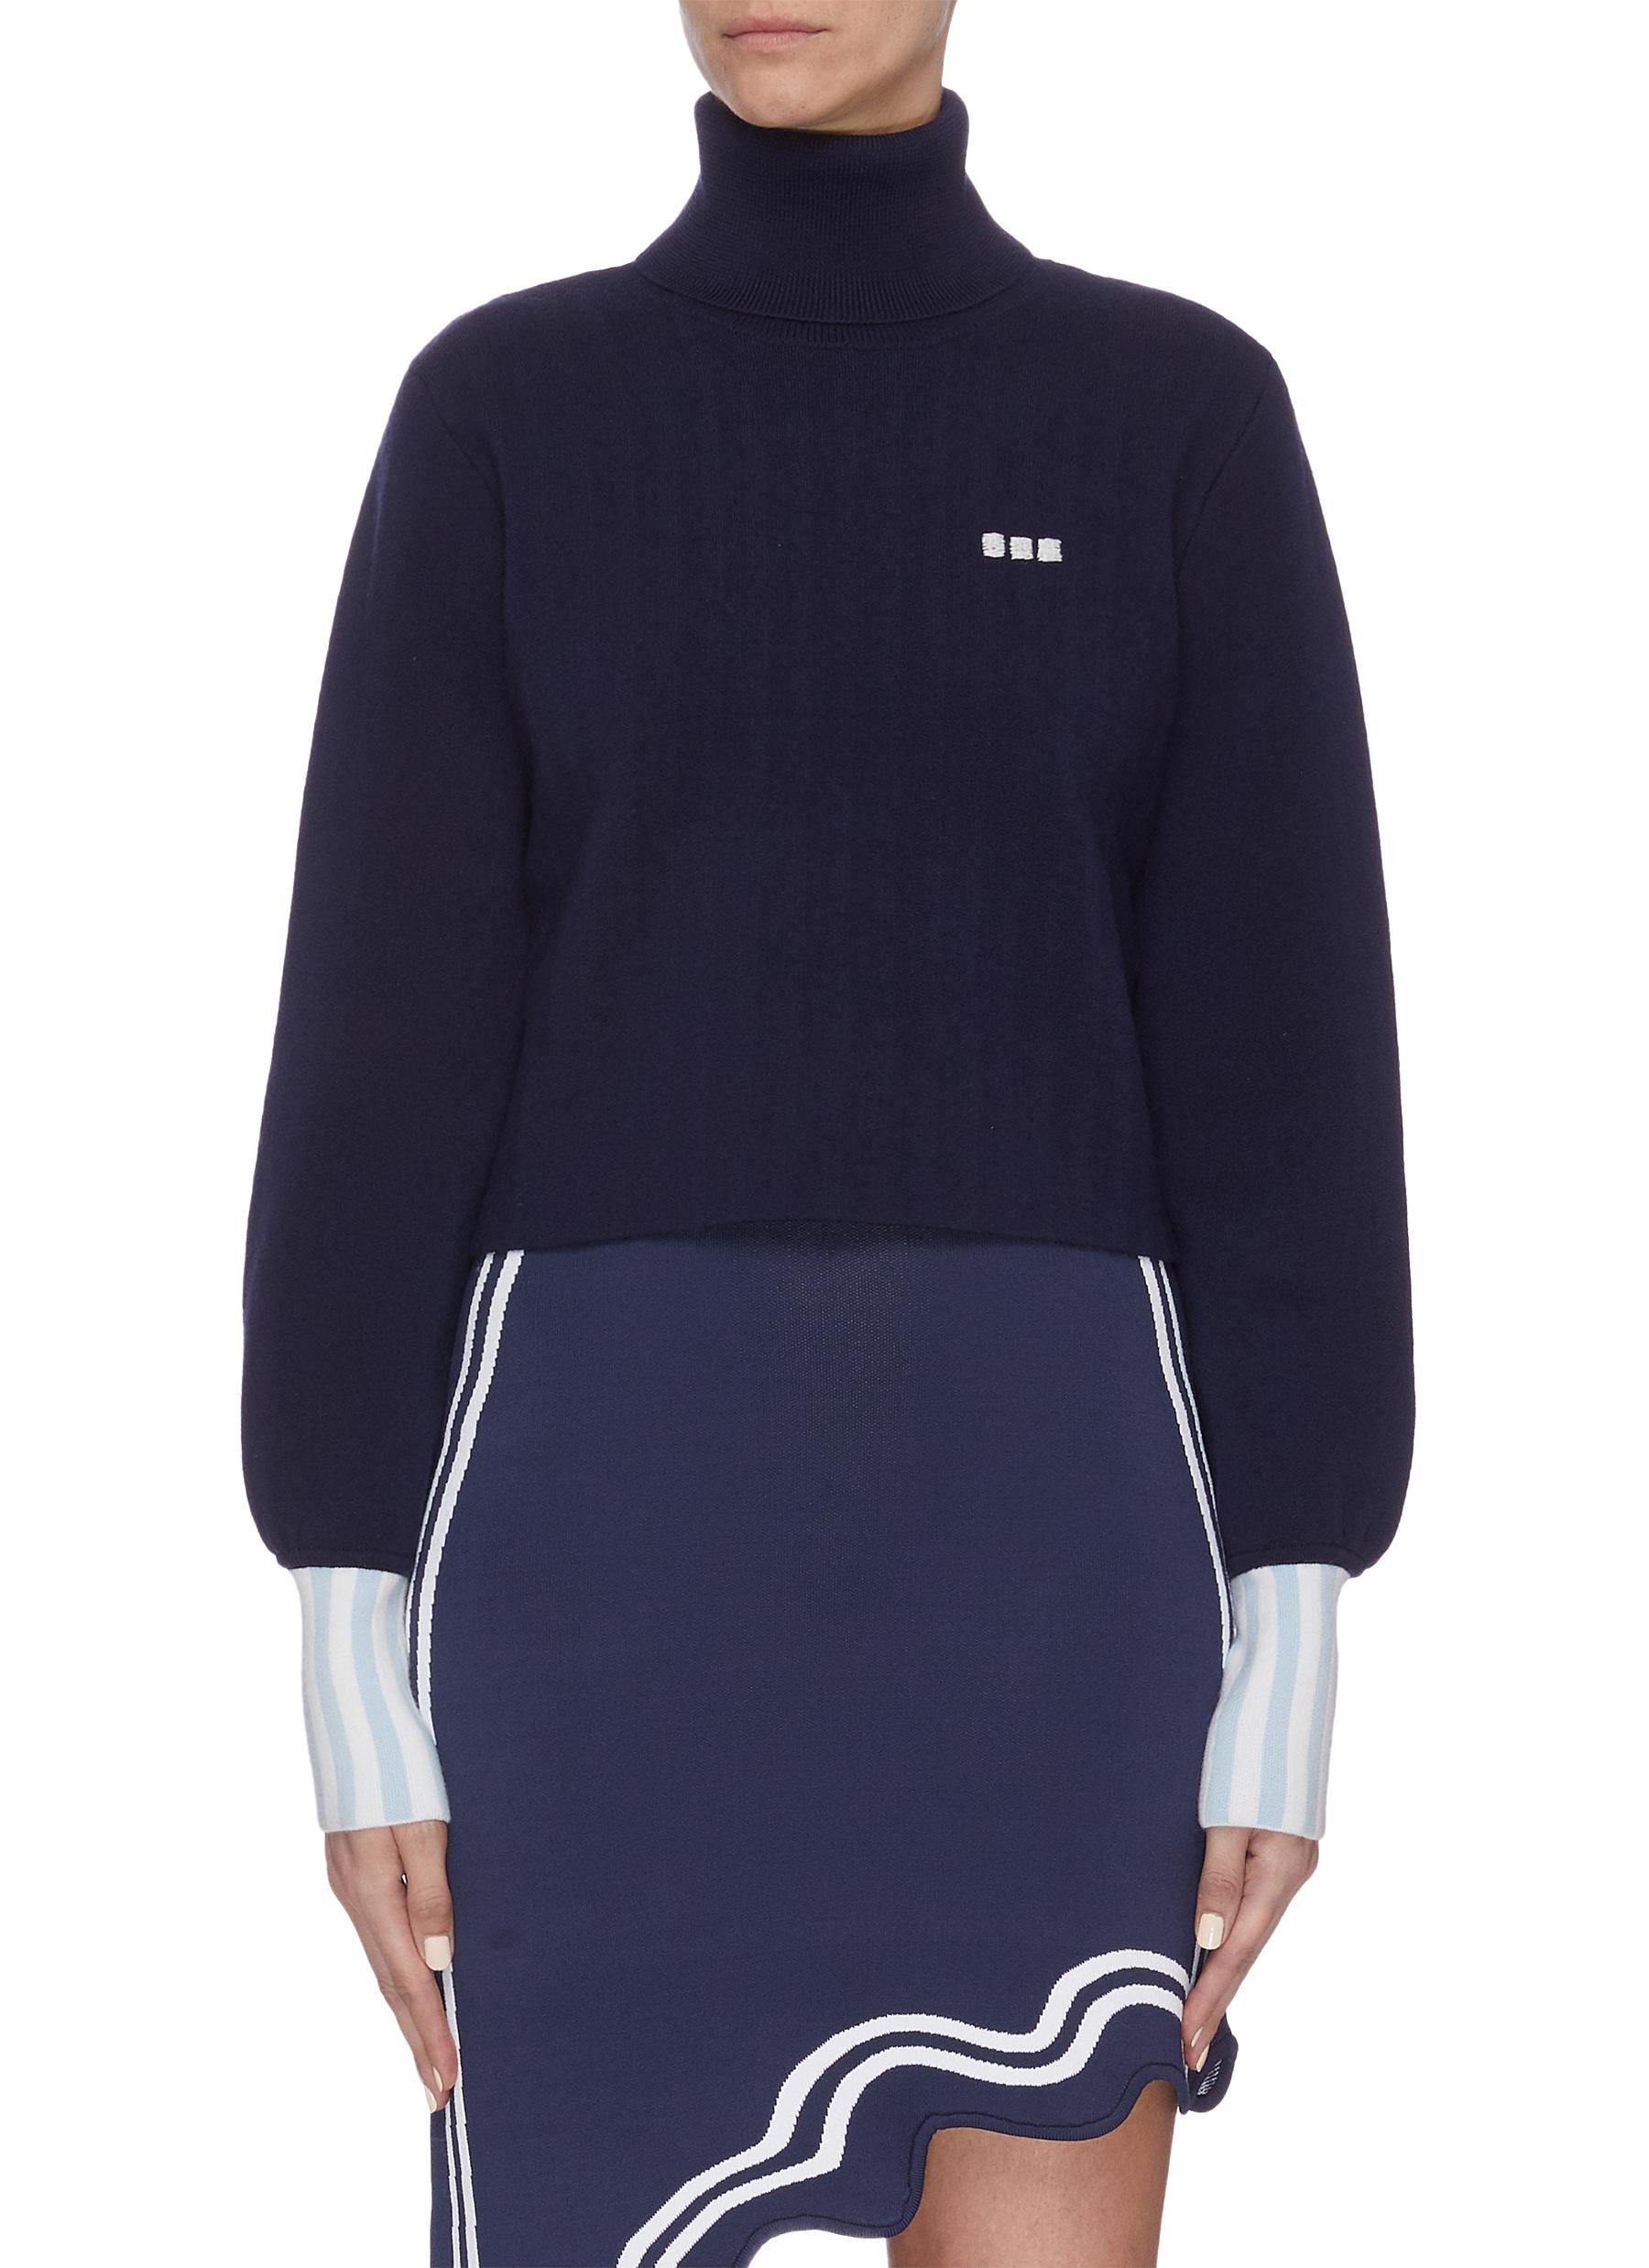 Buy Ph5 Knitwear Contrast cuff bishop sleeve cropped turtleneck sweater